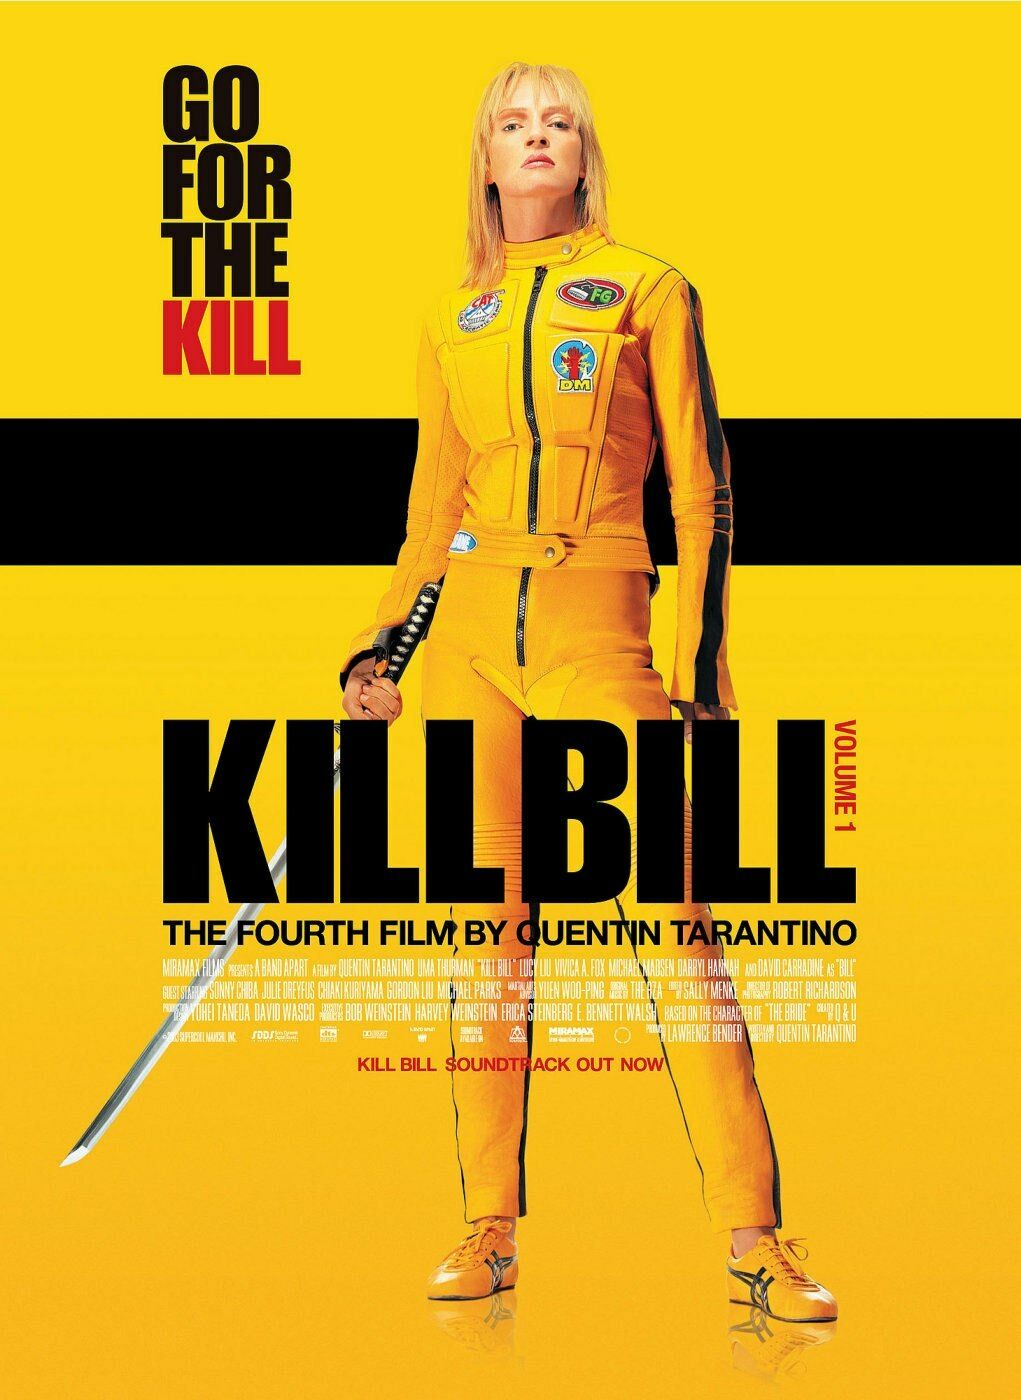 http://media.zenfs.com/en_US/News/US-AFPRelax/kill_bill_02.5ad7c134515.original.jpg